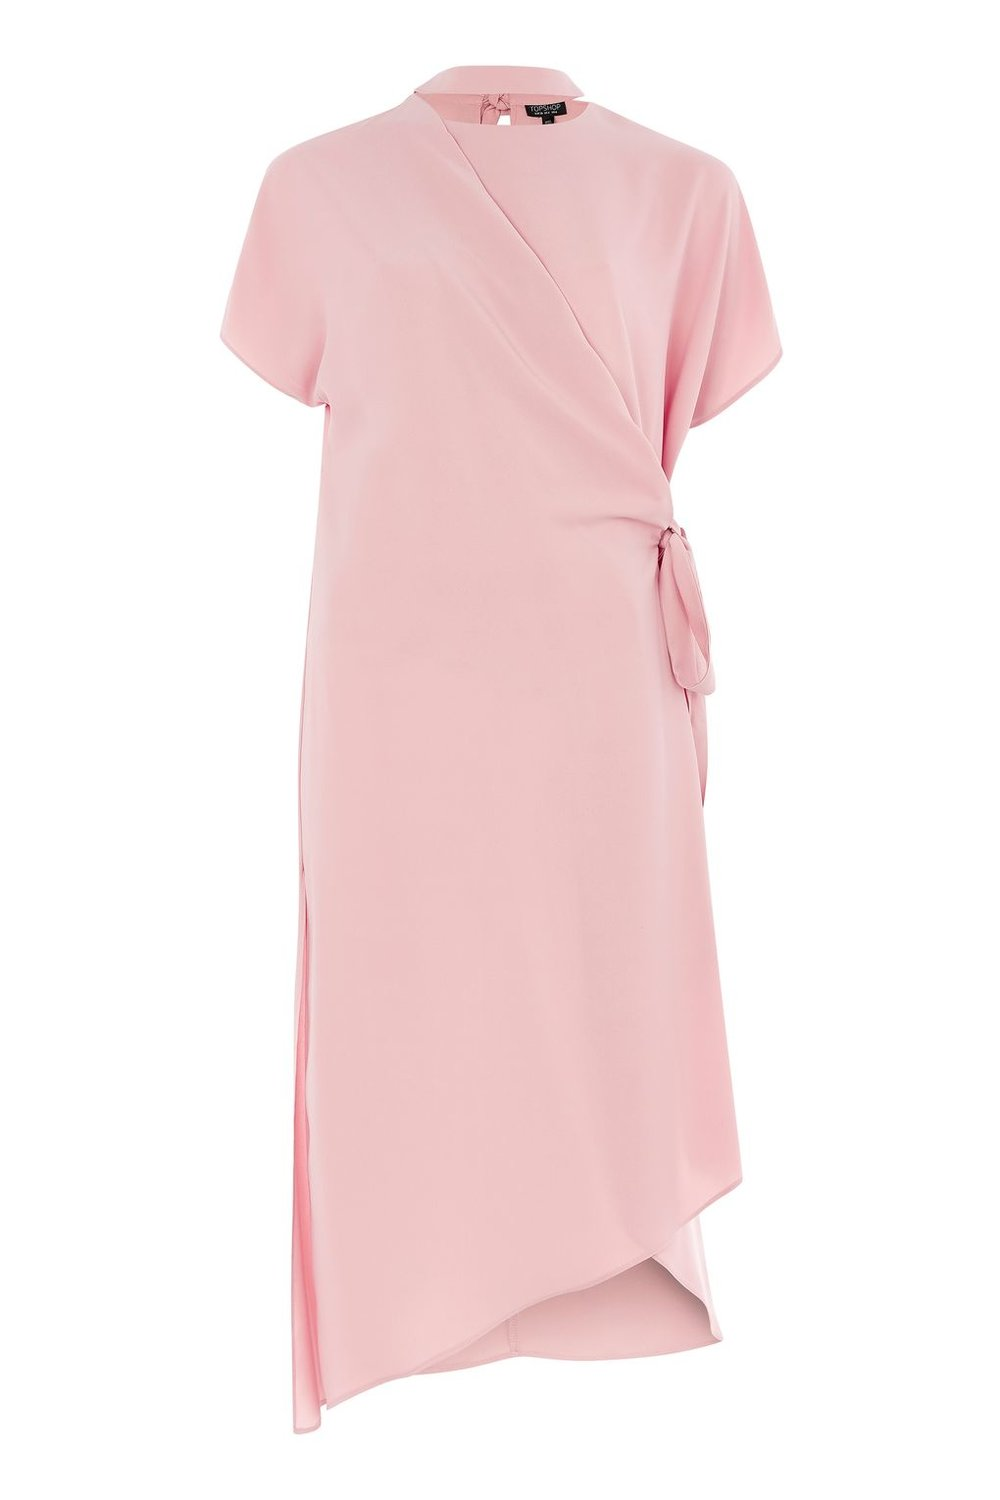 TOPSHOP SLASH NECK WRAP MIDI DRESS